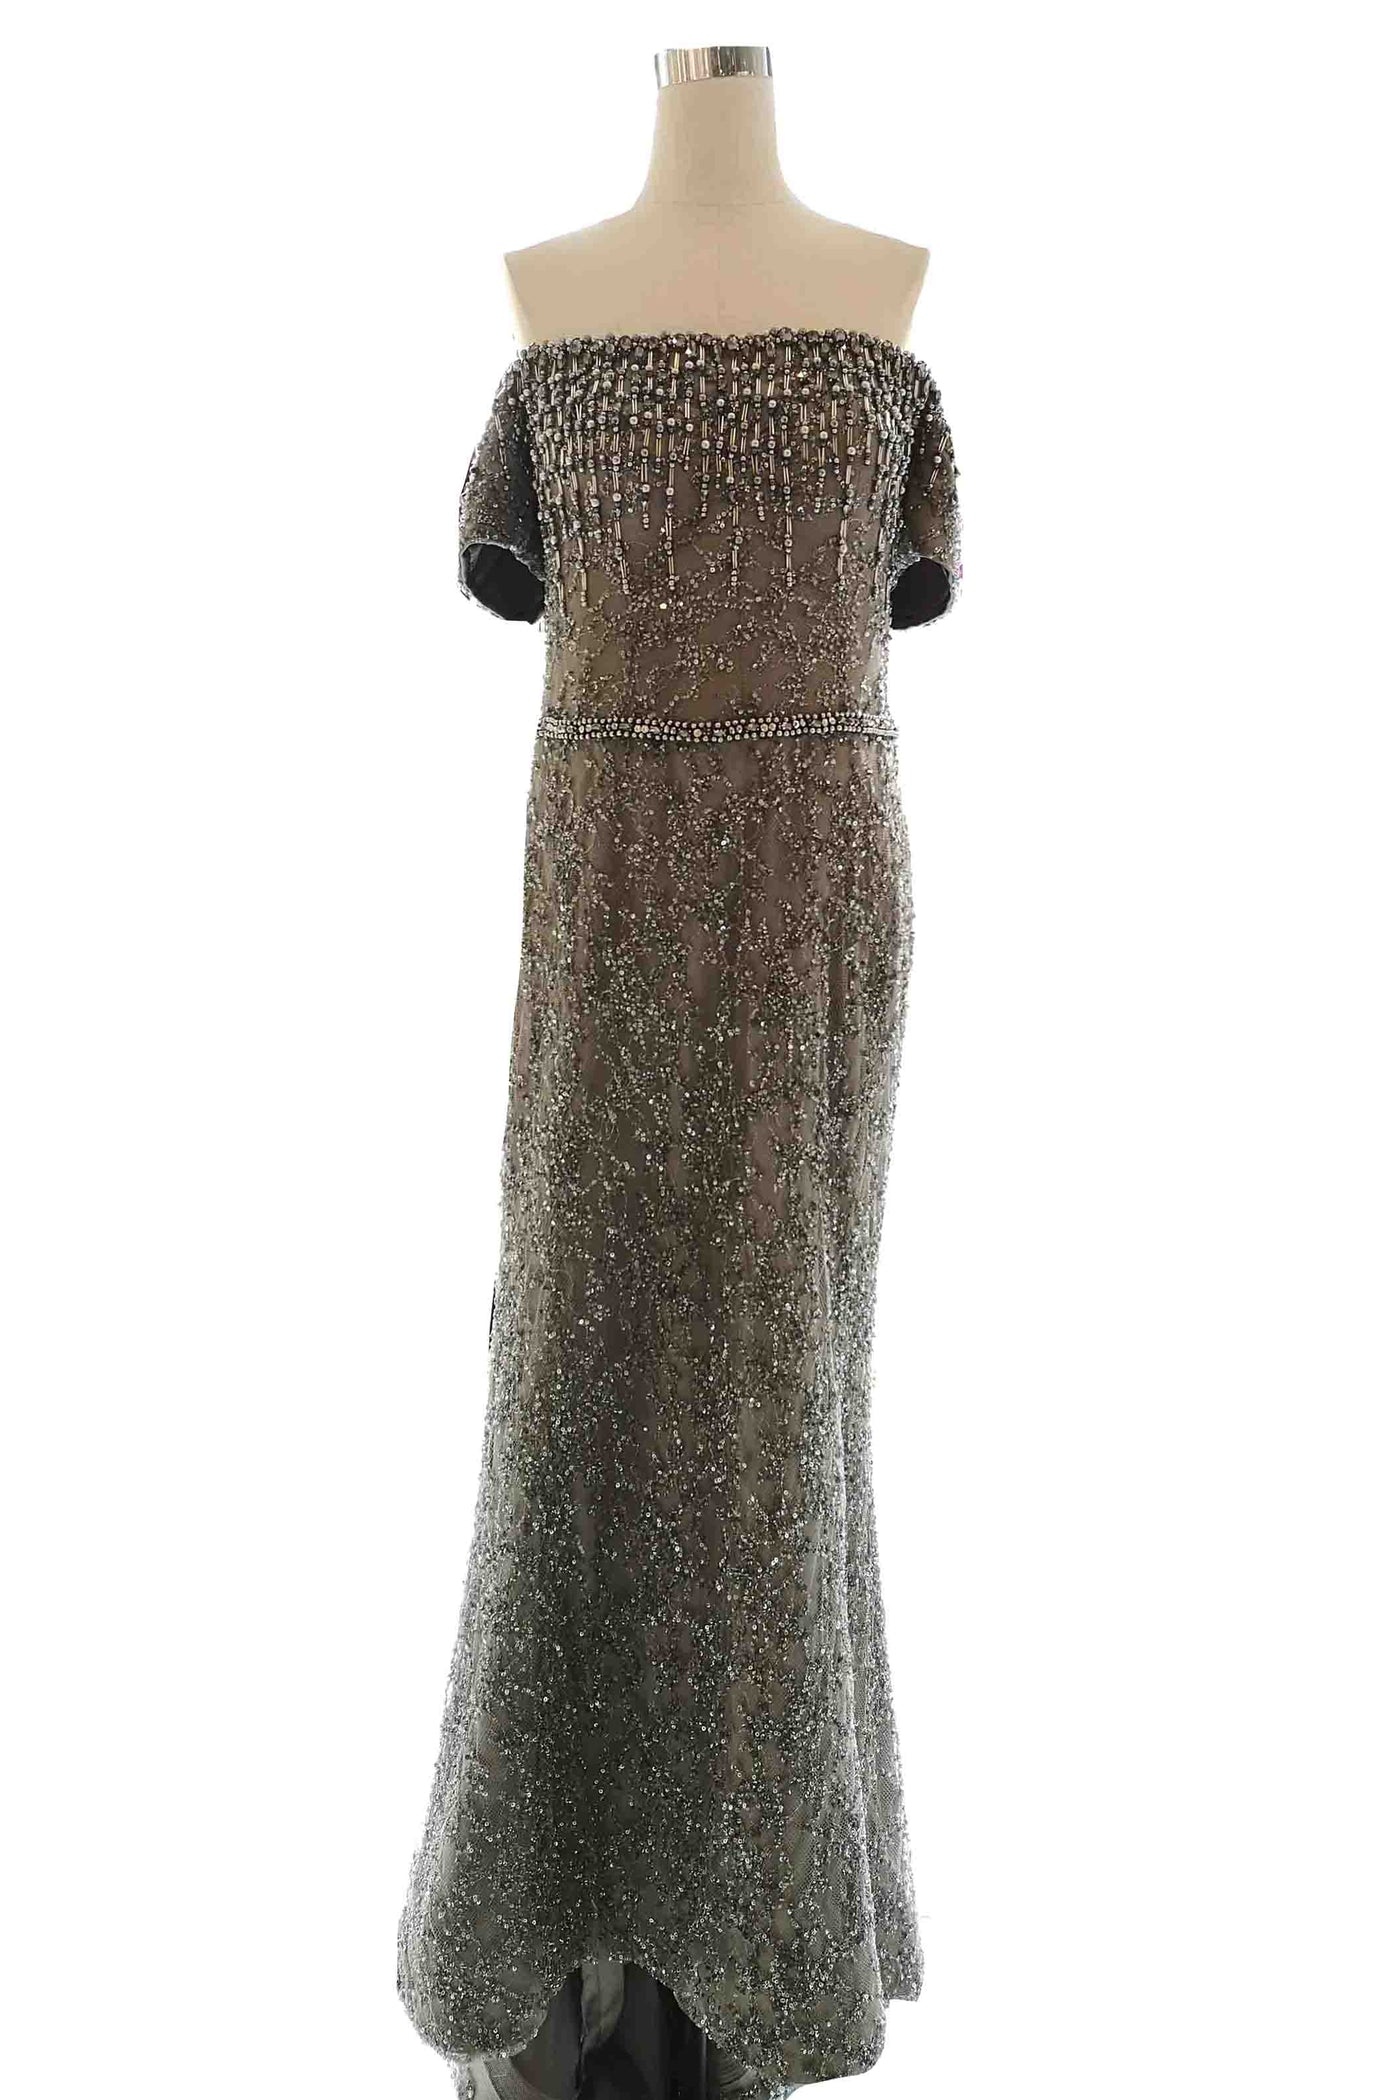 Rent: Winda Halomoan - Silver Sparkly Mermaid Gown